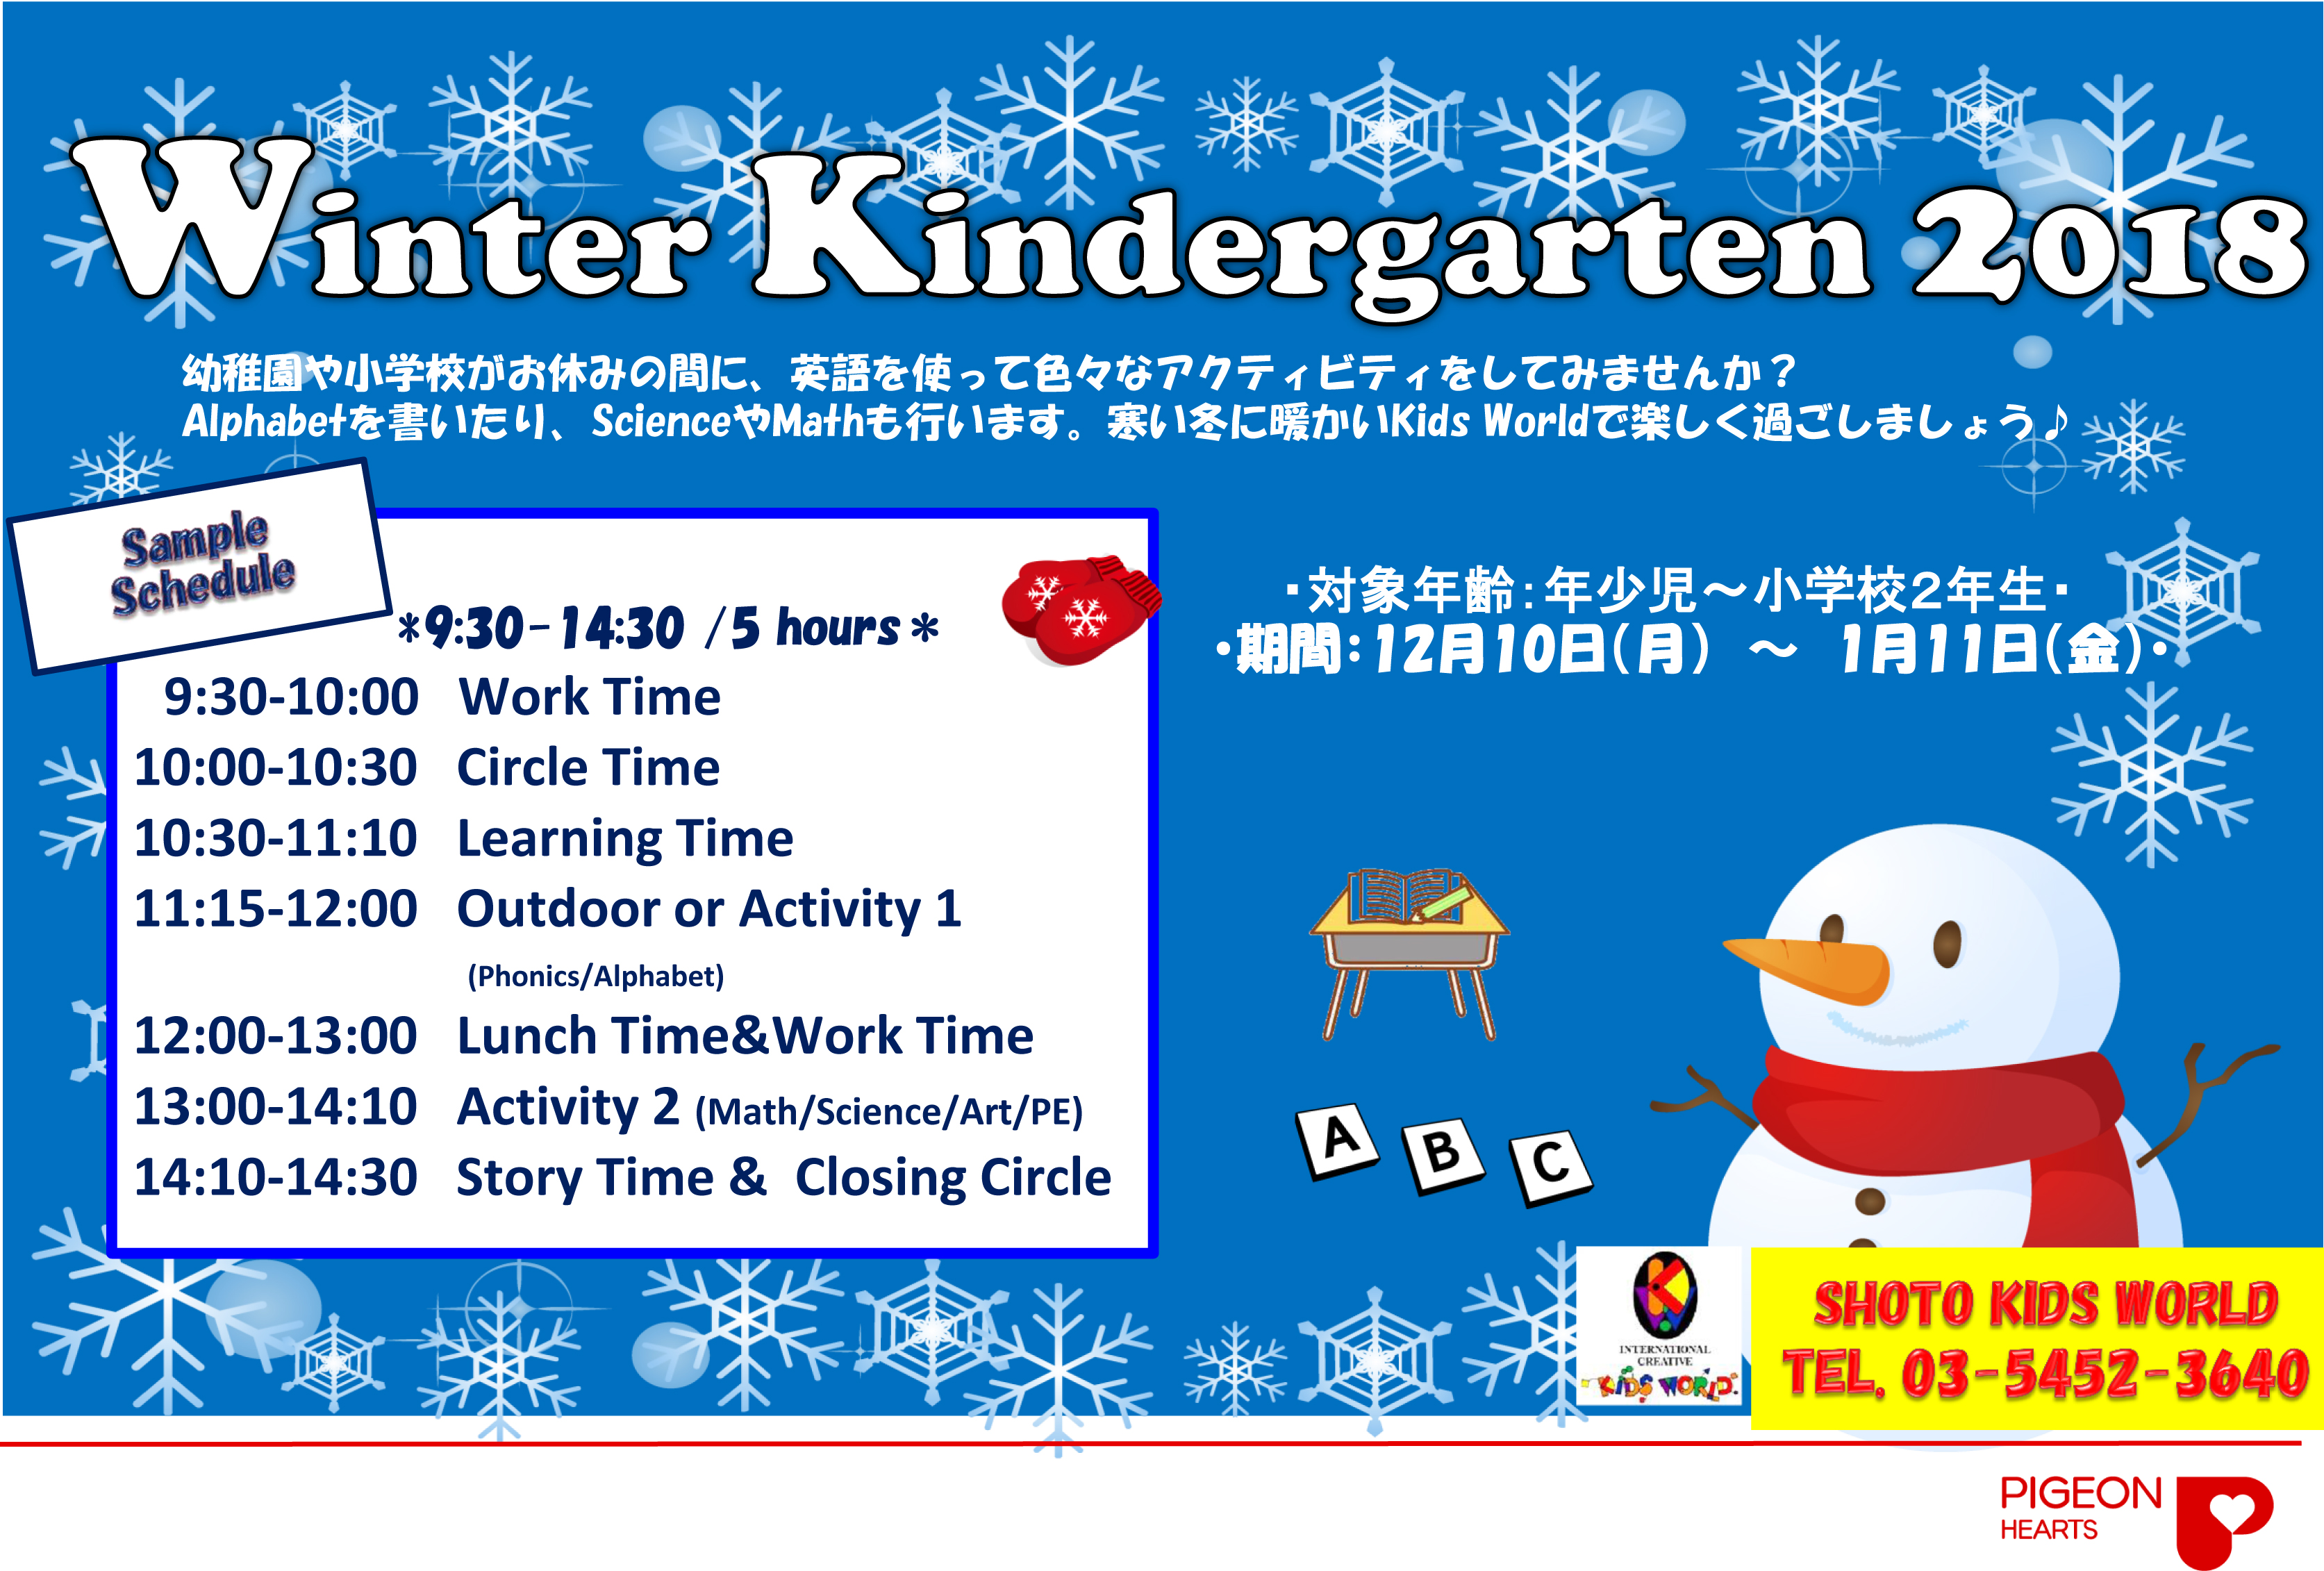 【松涛】Winter-Kinder-WEB用2018-1